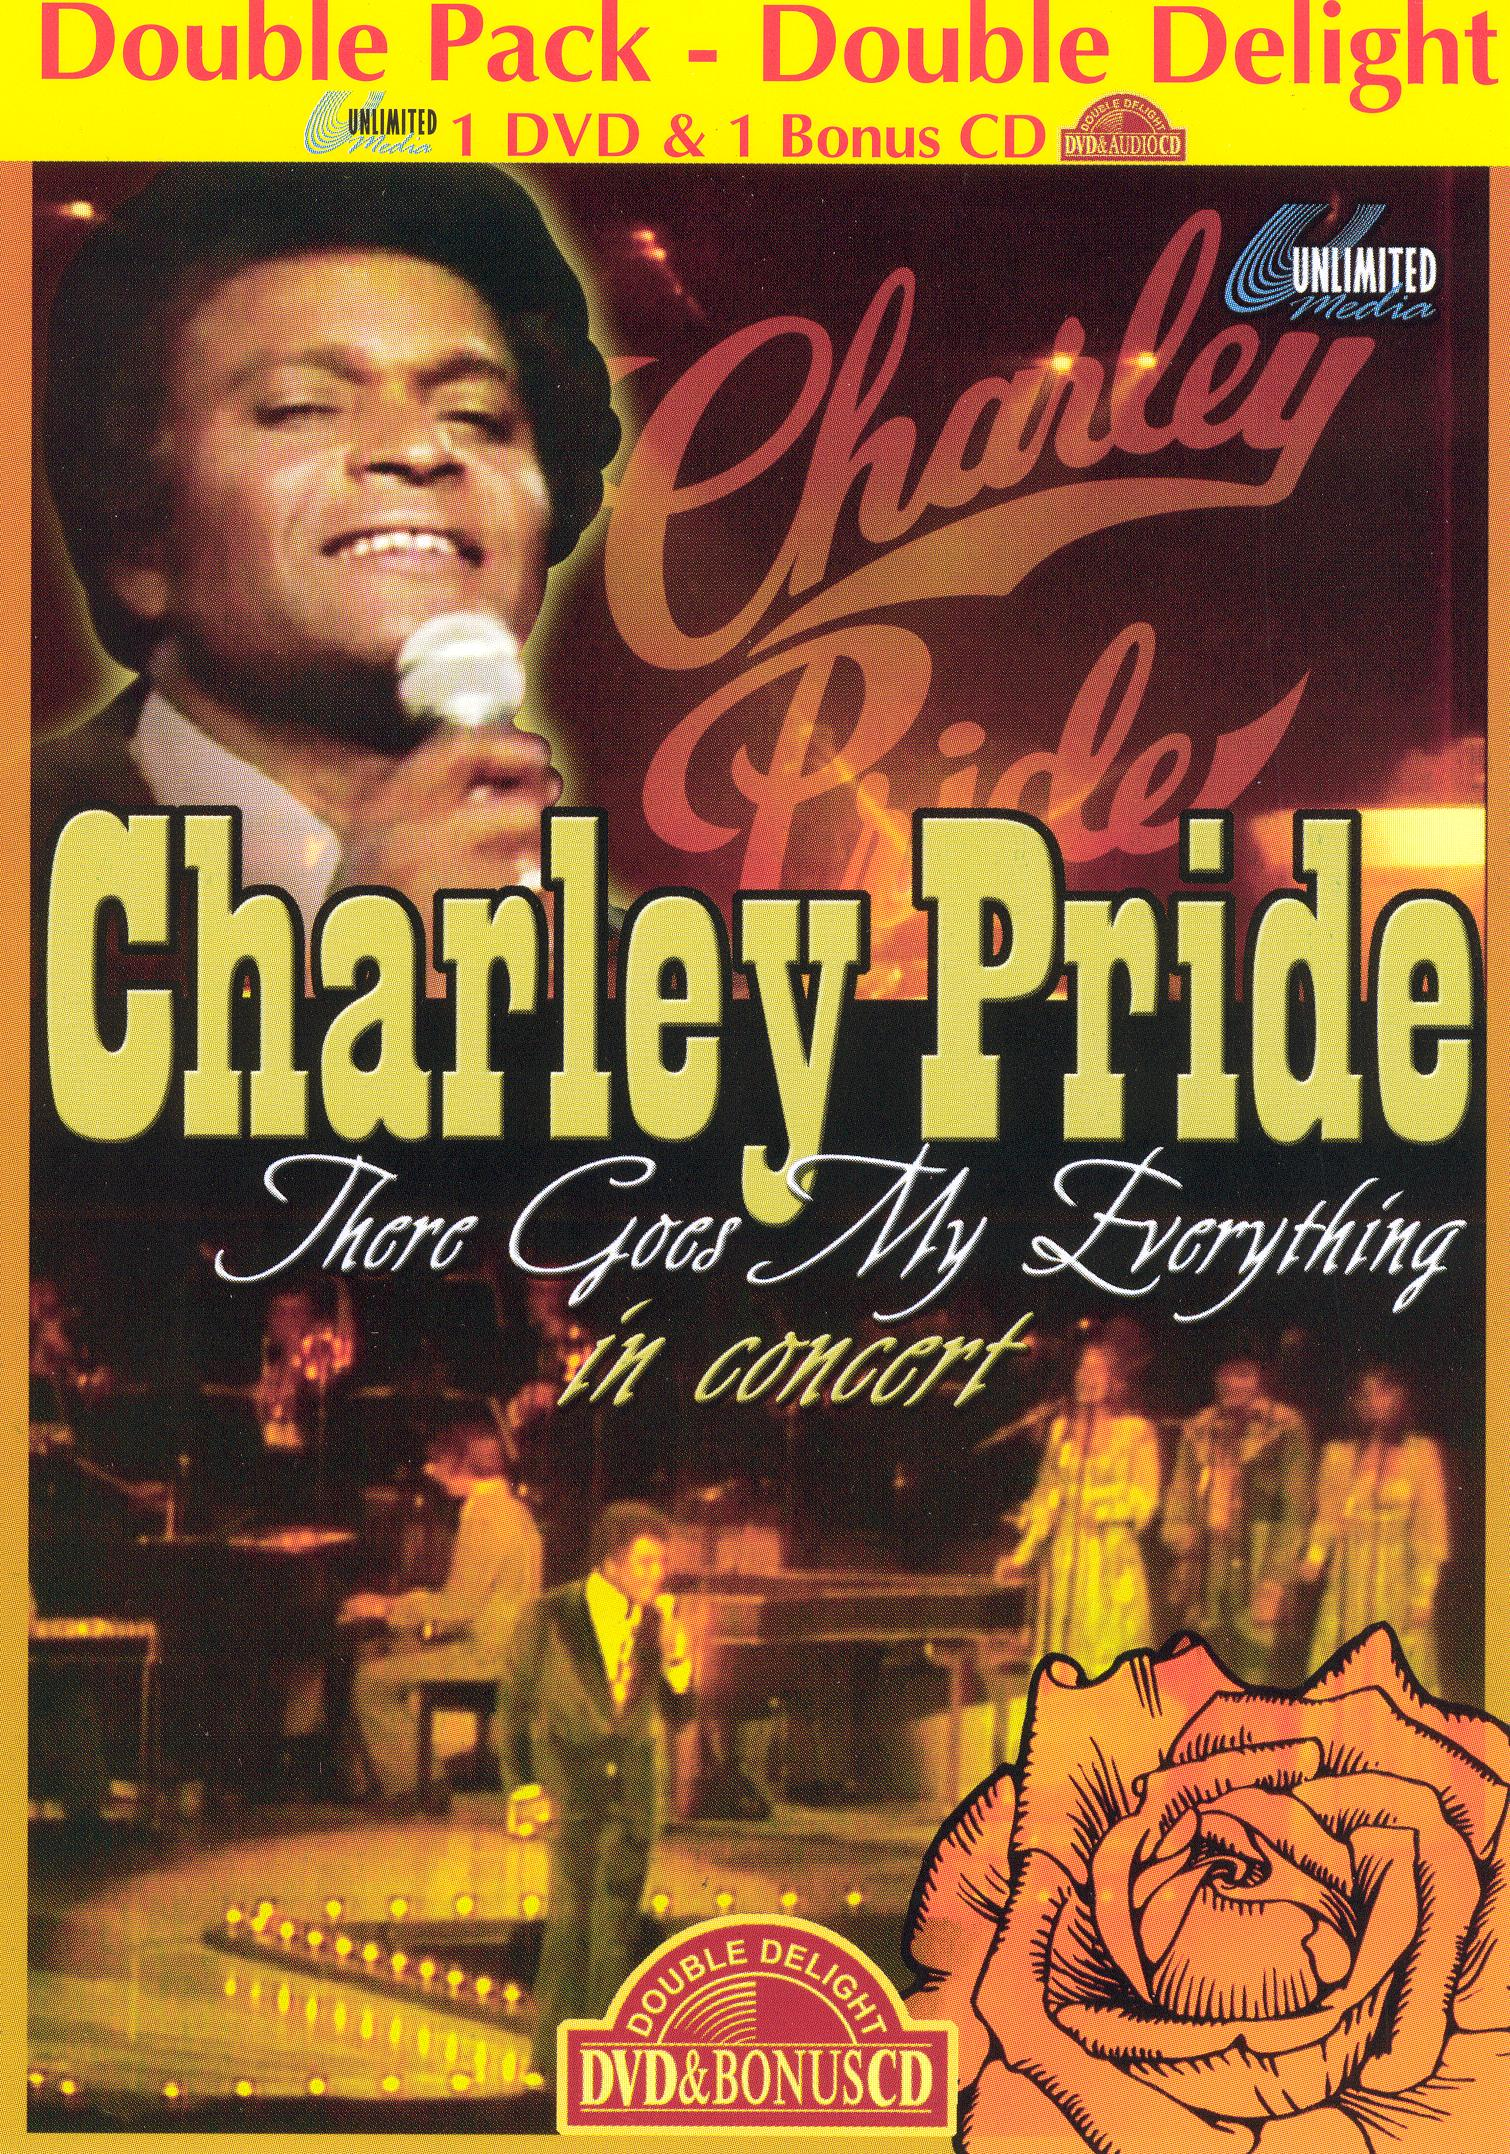 Charley Pride: There Goes My Everything - In Concert